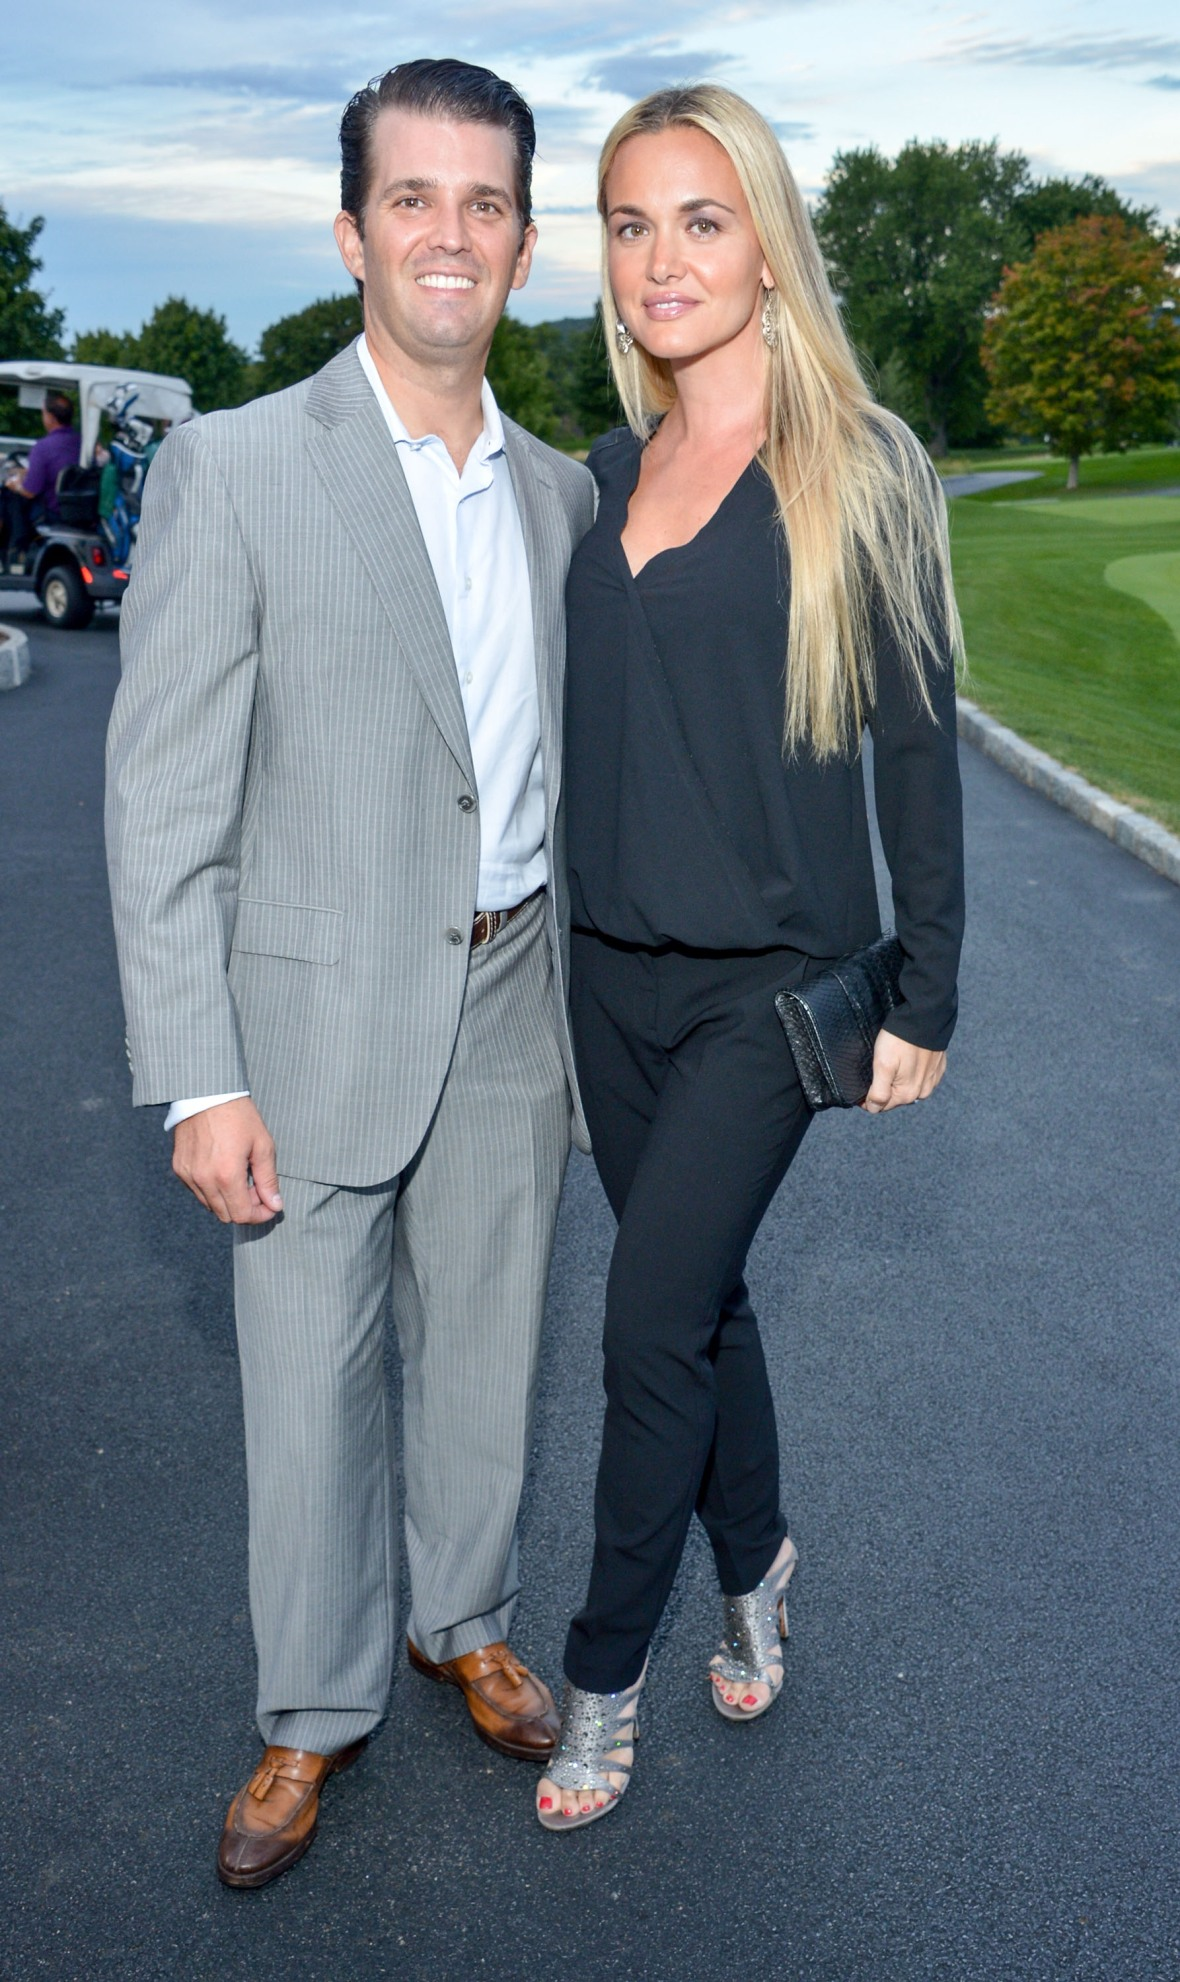 donald trump jr. wife getty images